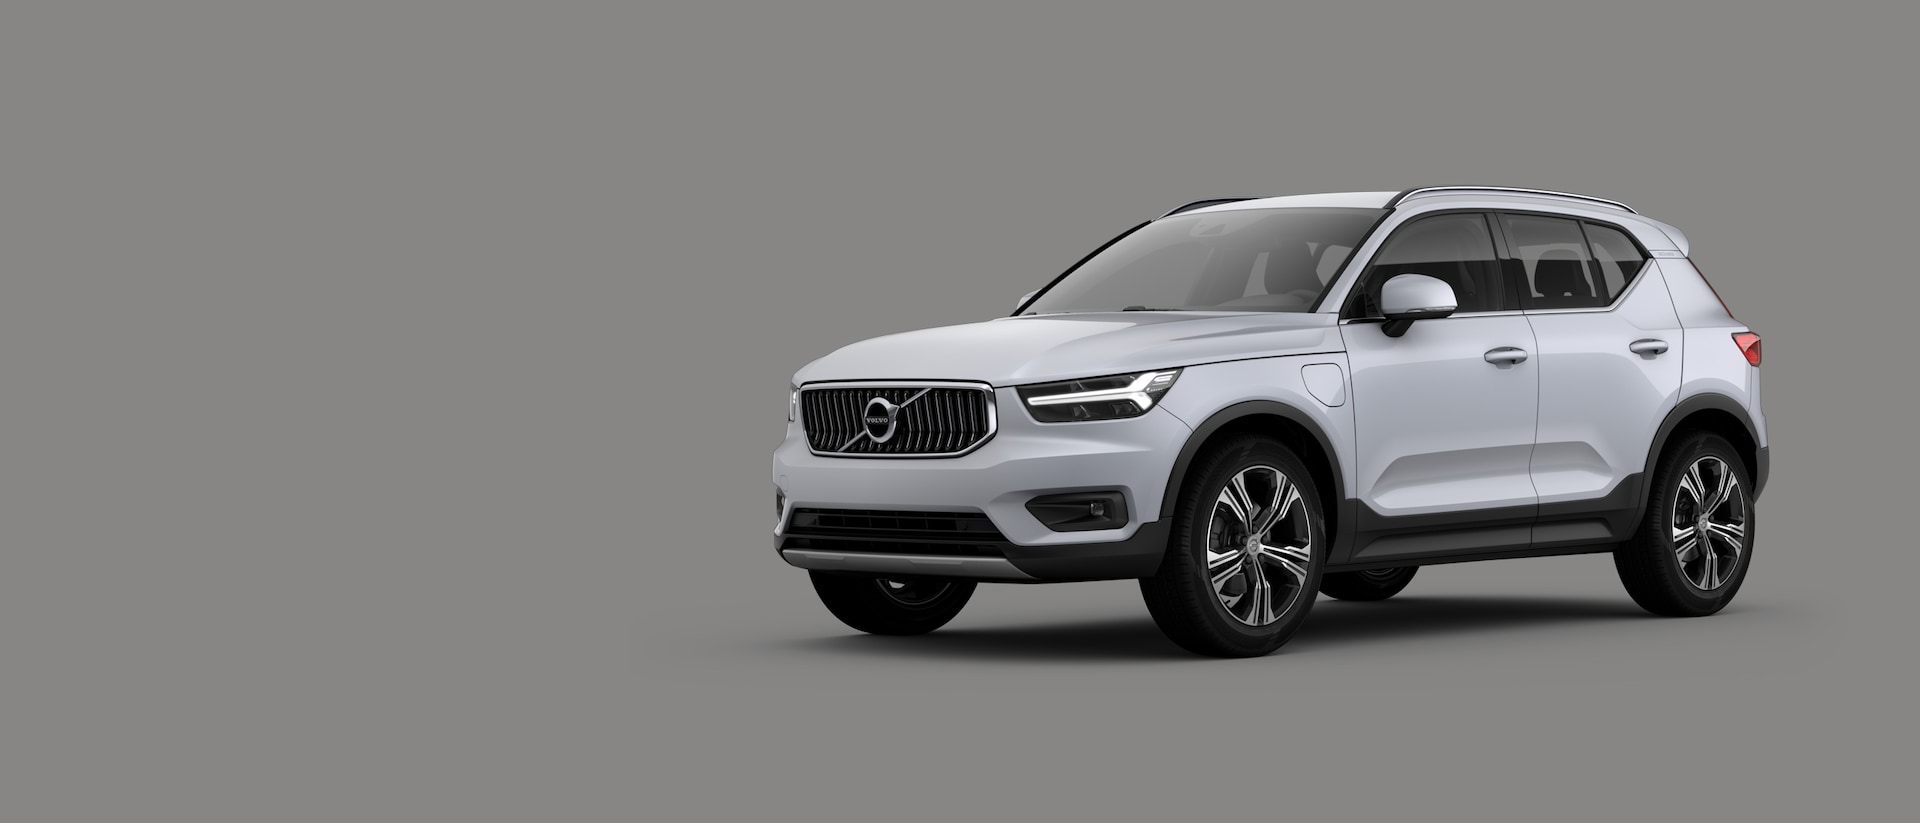 Pohled na vůz Volvo XC40 Recharge